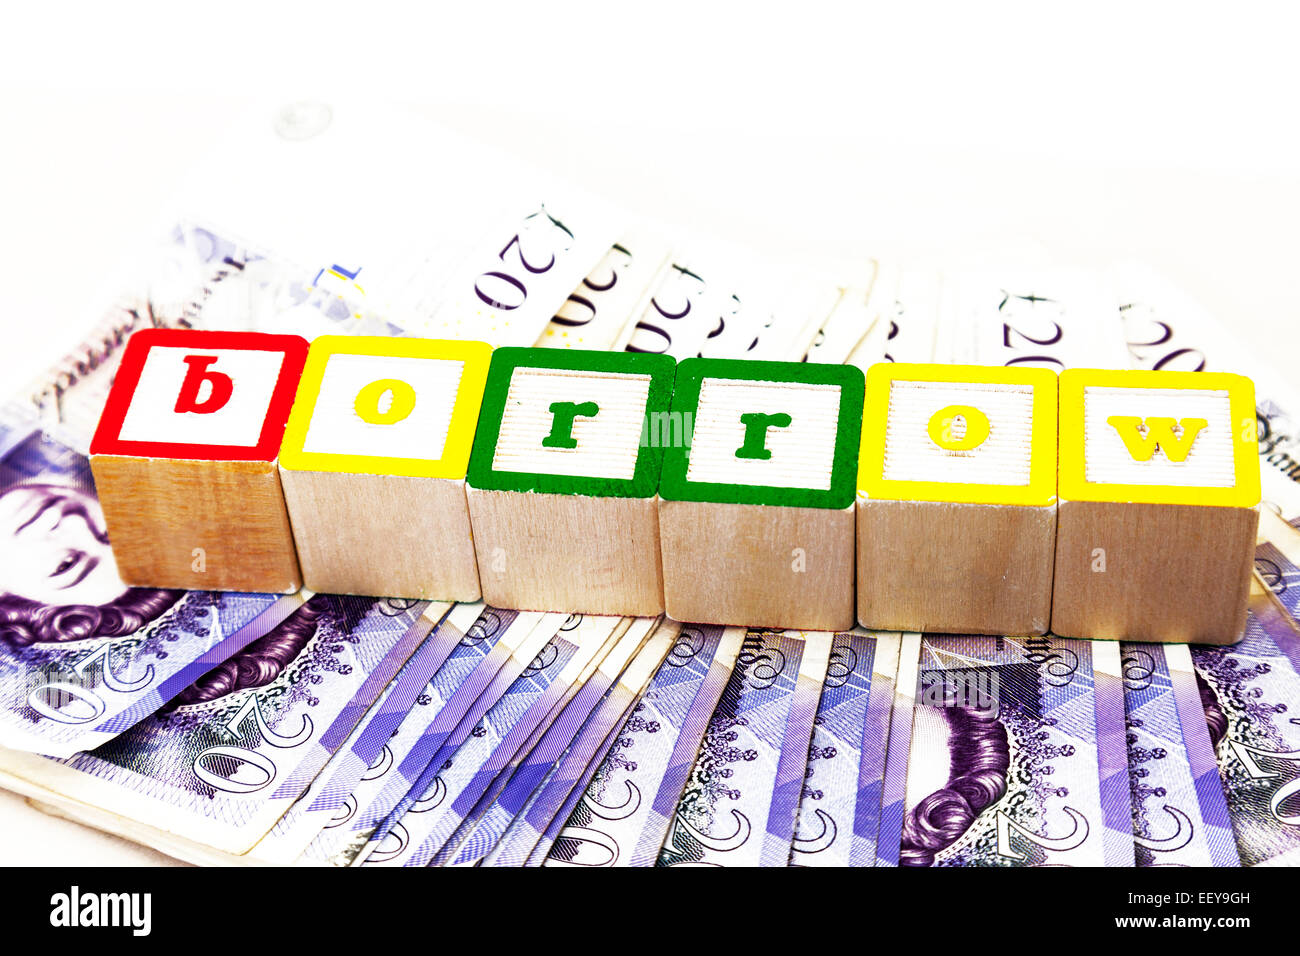 borrow borrowing money loans loan debt interest rates cost poor more poorer people cut out copy space white background - Stock Image